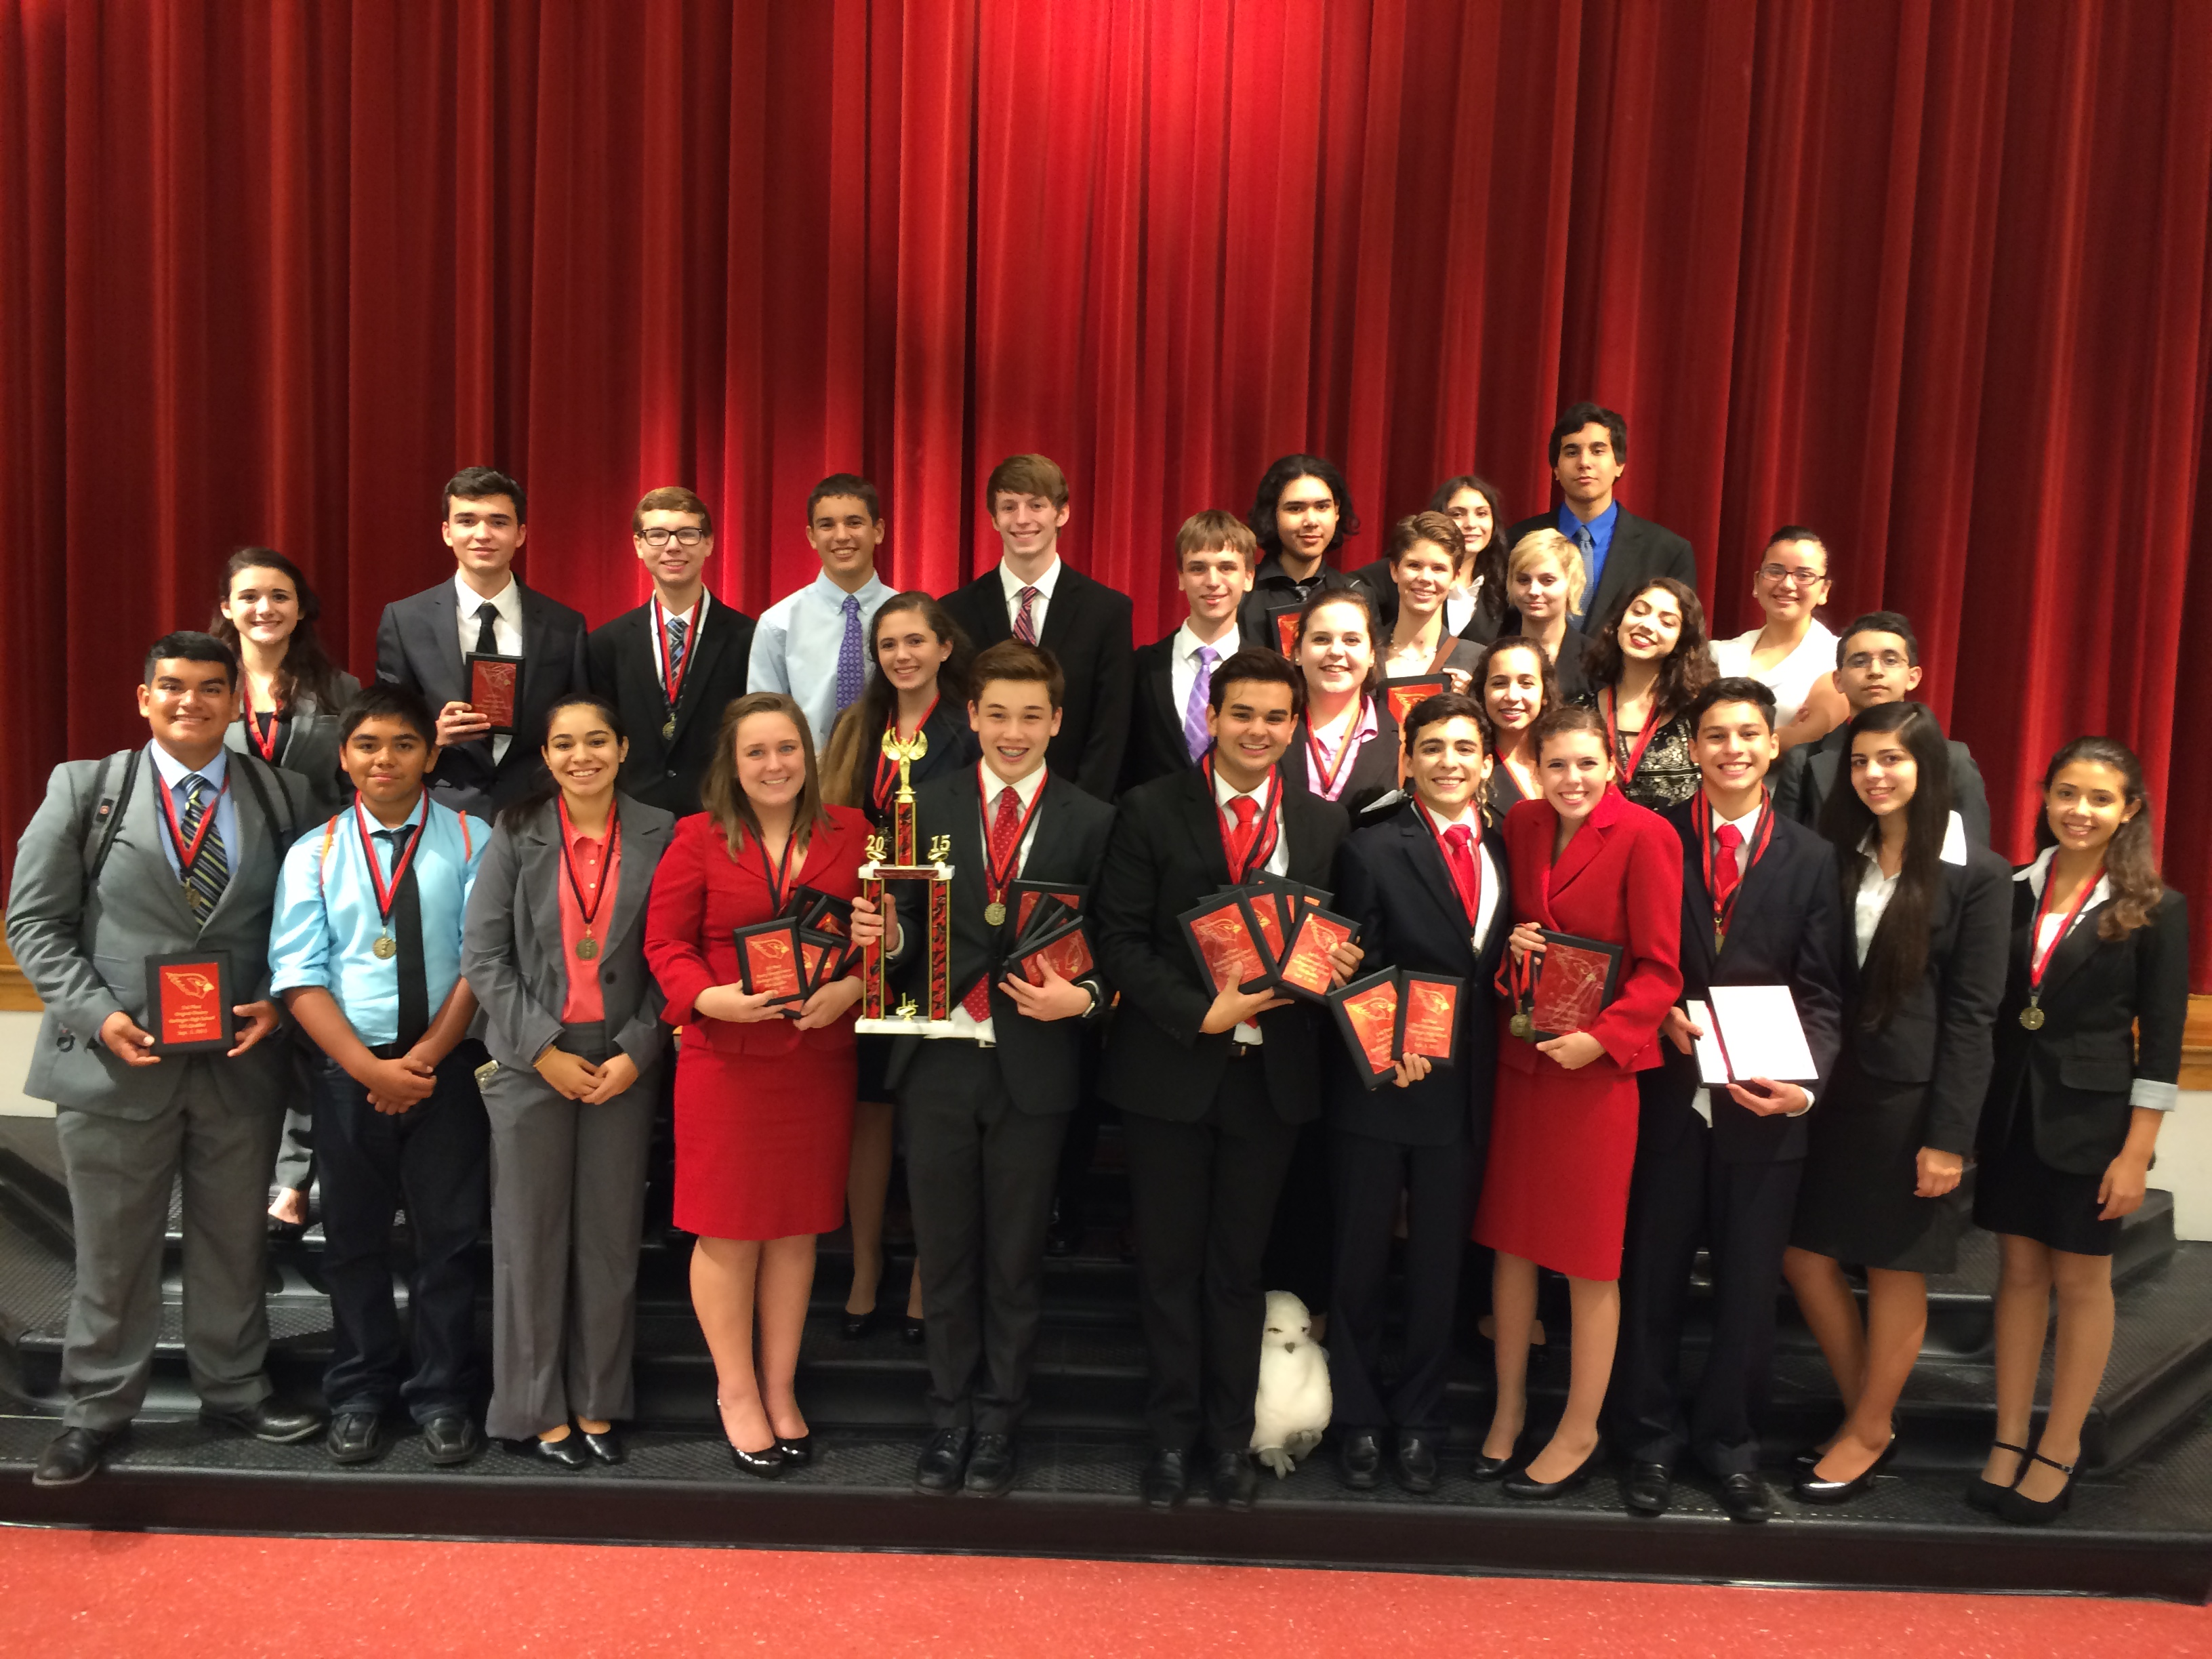 Harlingen South Speech, Drama, and Debate team takes sweepstakes in season's first TFA qualifying tournament